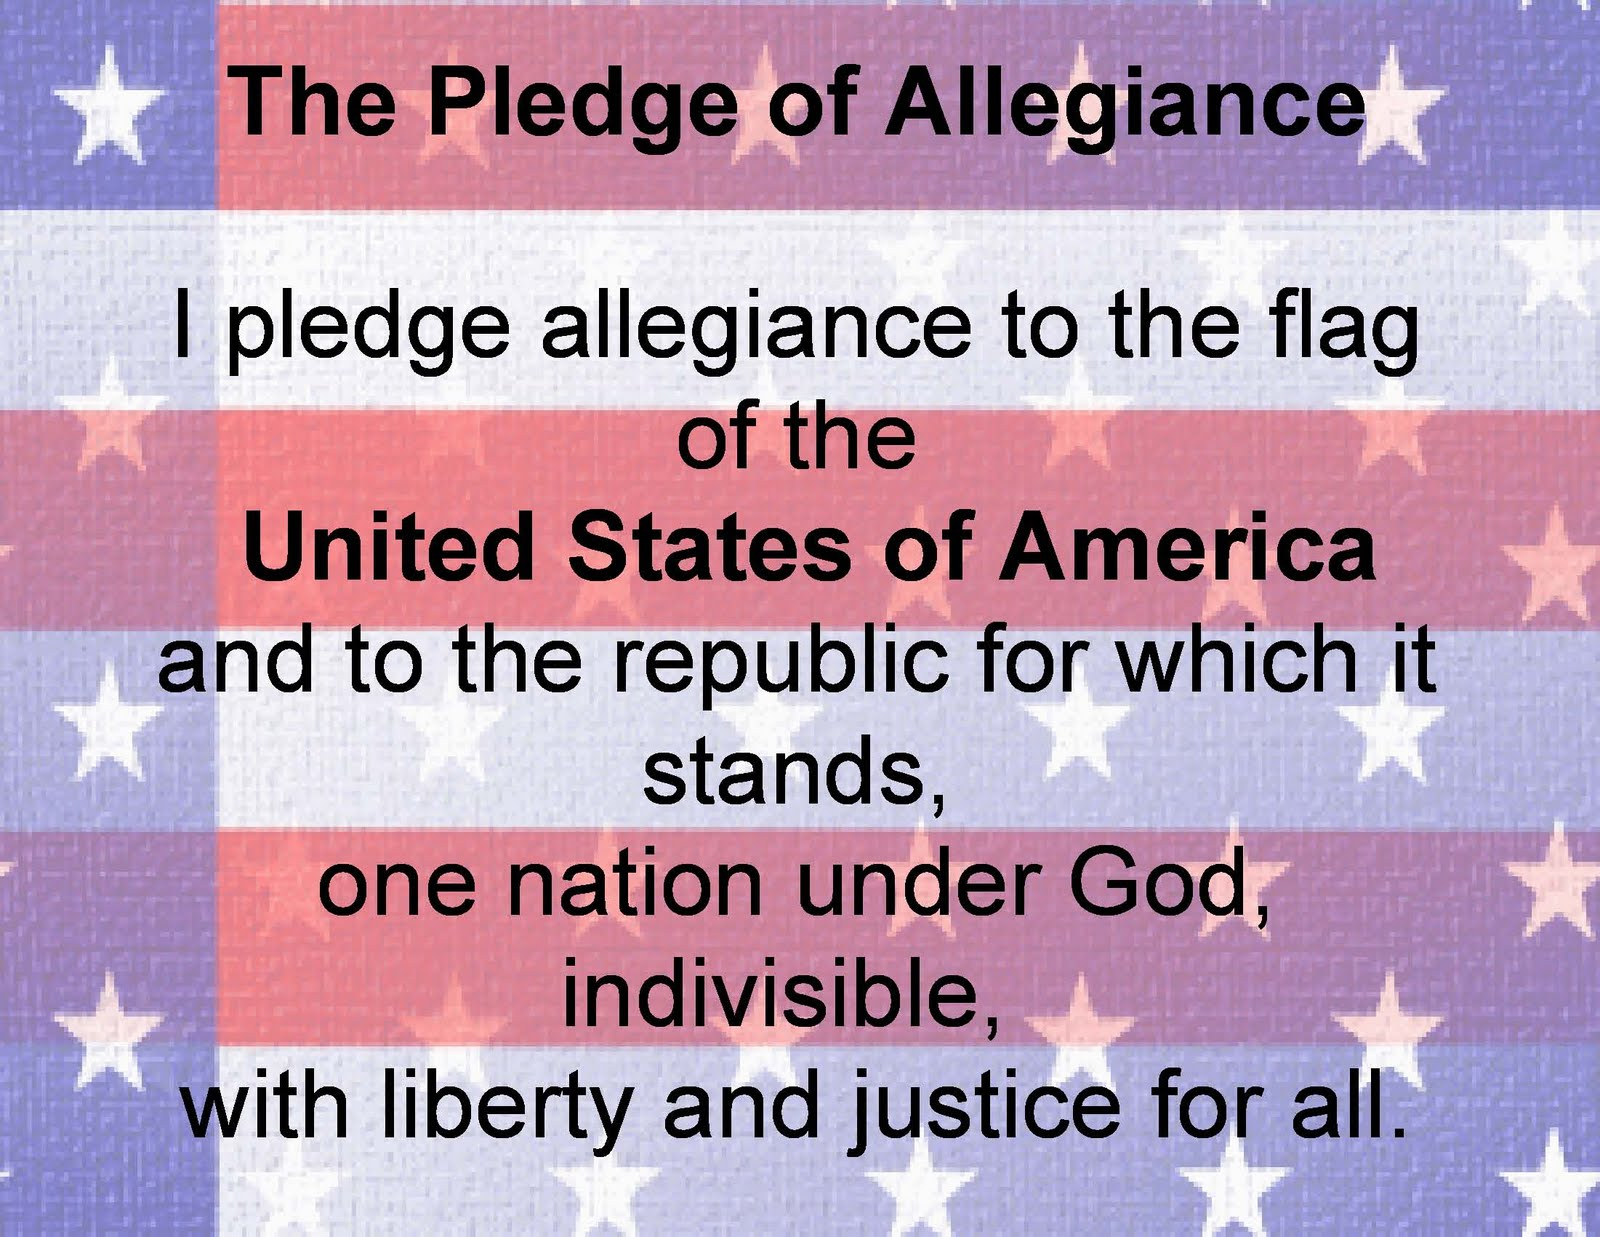 In Reponse To I Pledge Allegiance To Our World Of